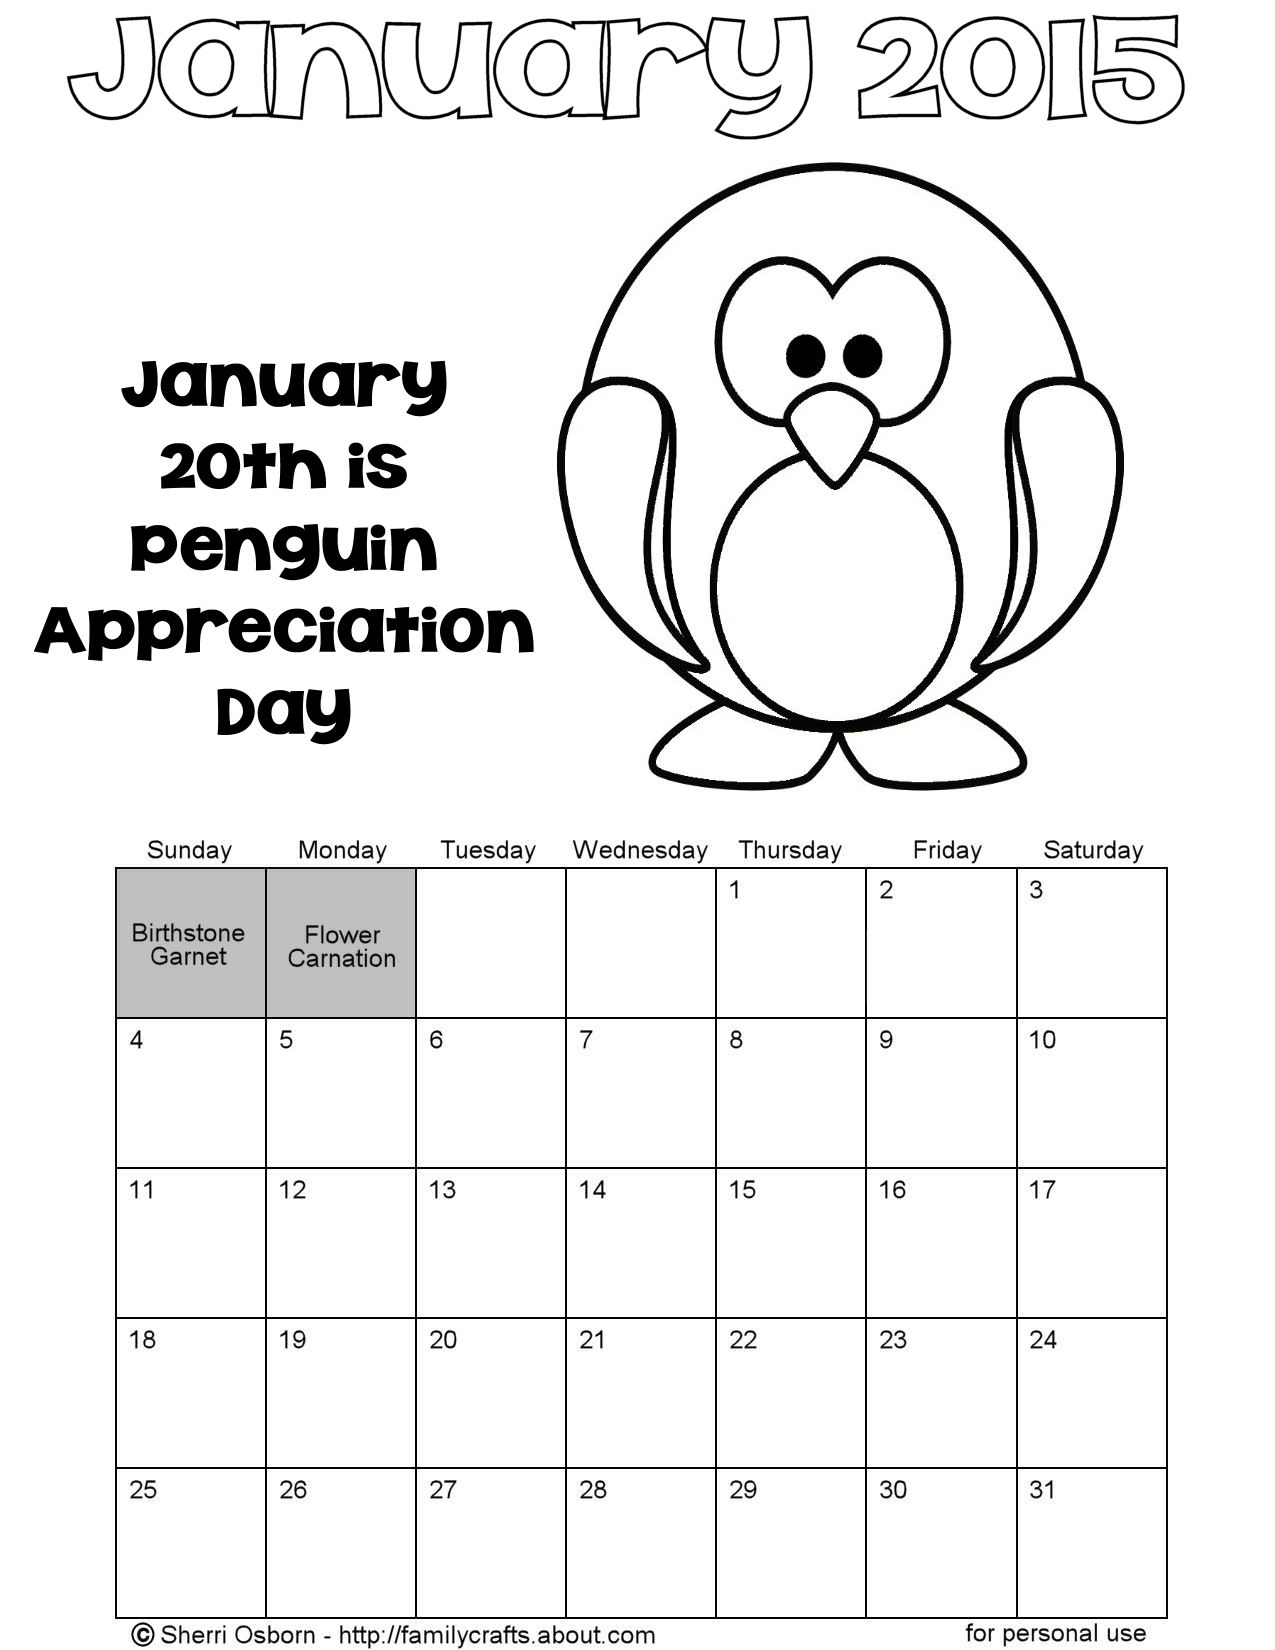 Coloring pages for january - January 2015 Penguin Calendar Coloring Page